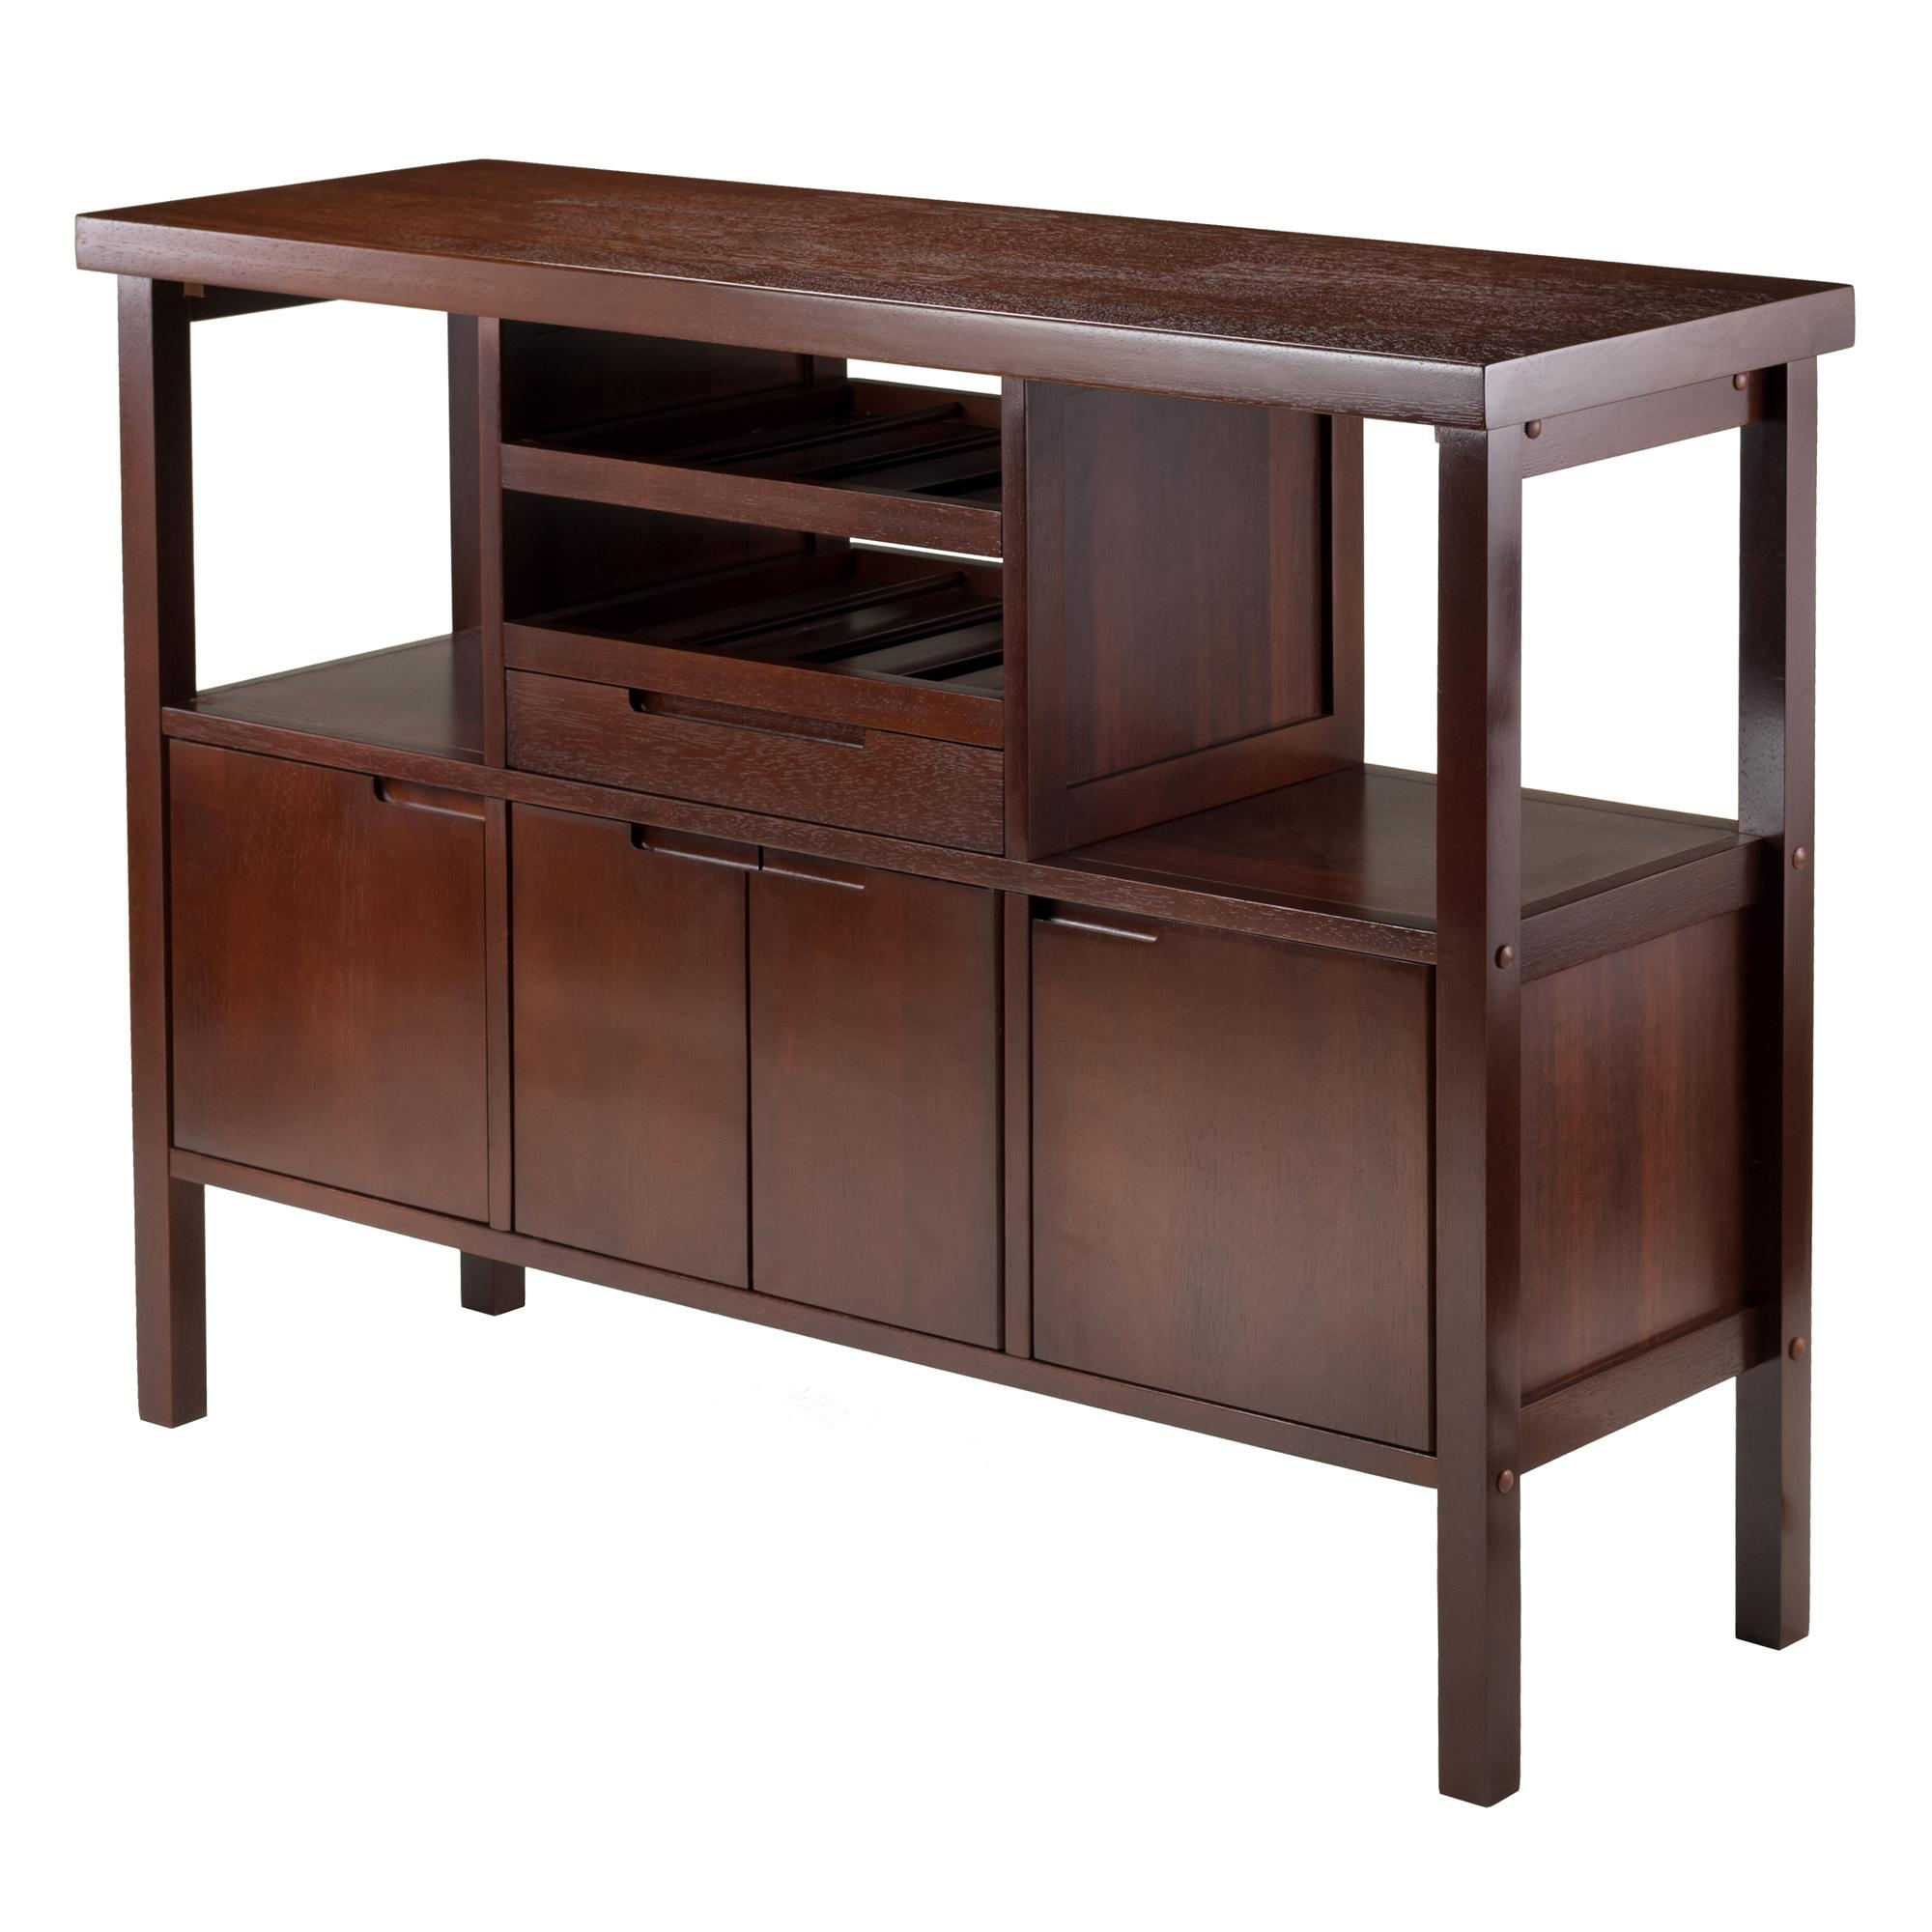 ... - Winsome Diego Buffet/Sideboard Table, Brown - Buffets & Sideboards